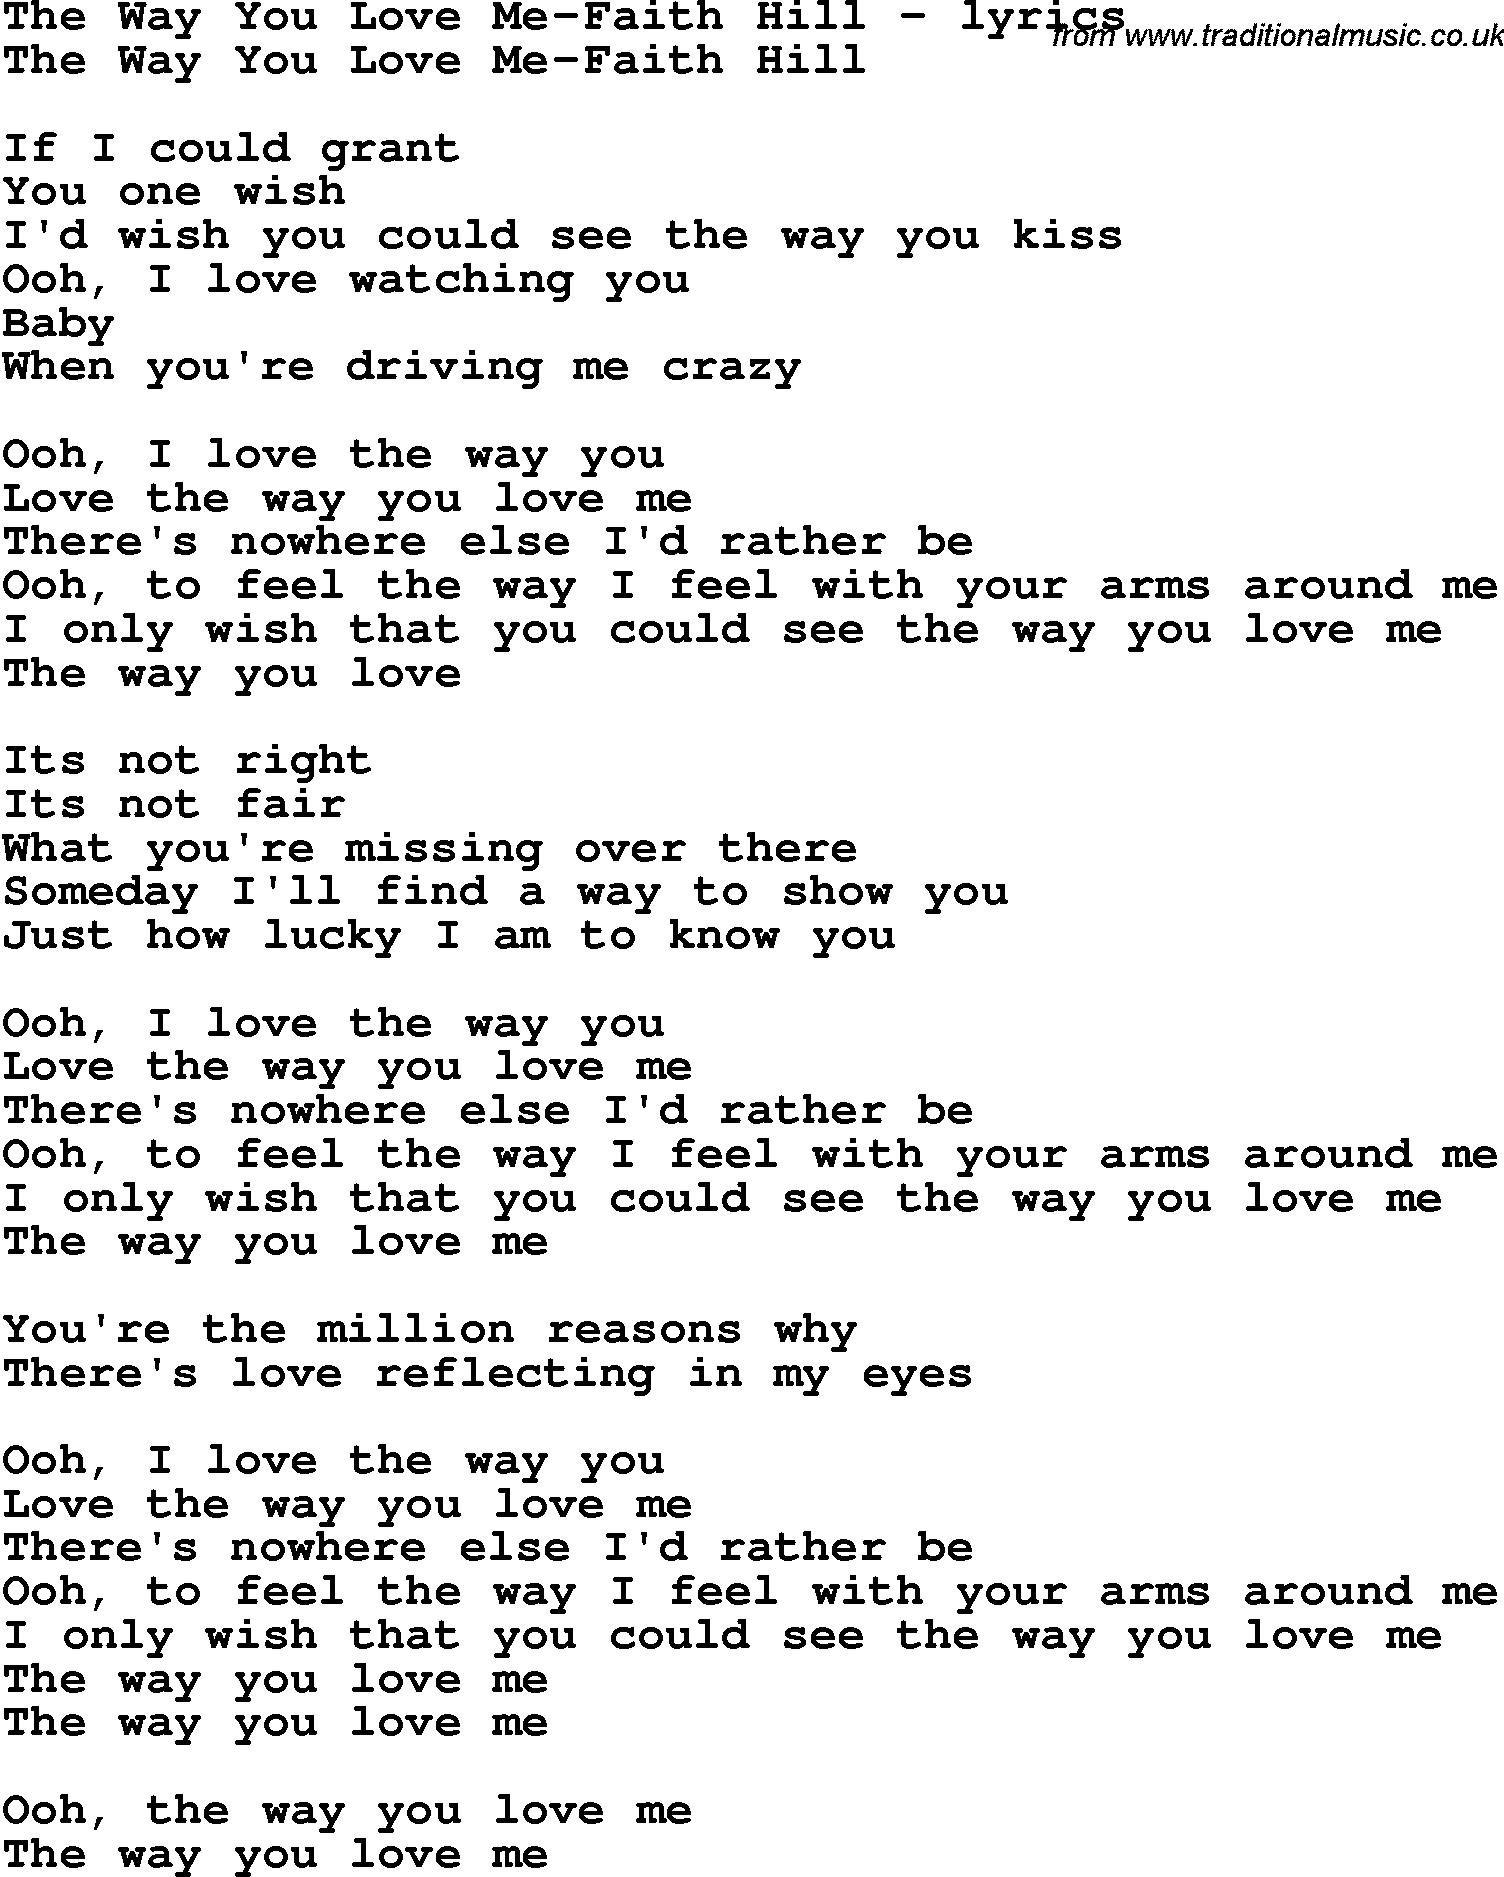 Love Song Lyrics For: The Way You Love Me Faith Hill